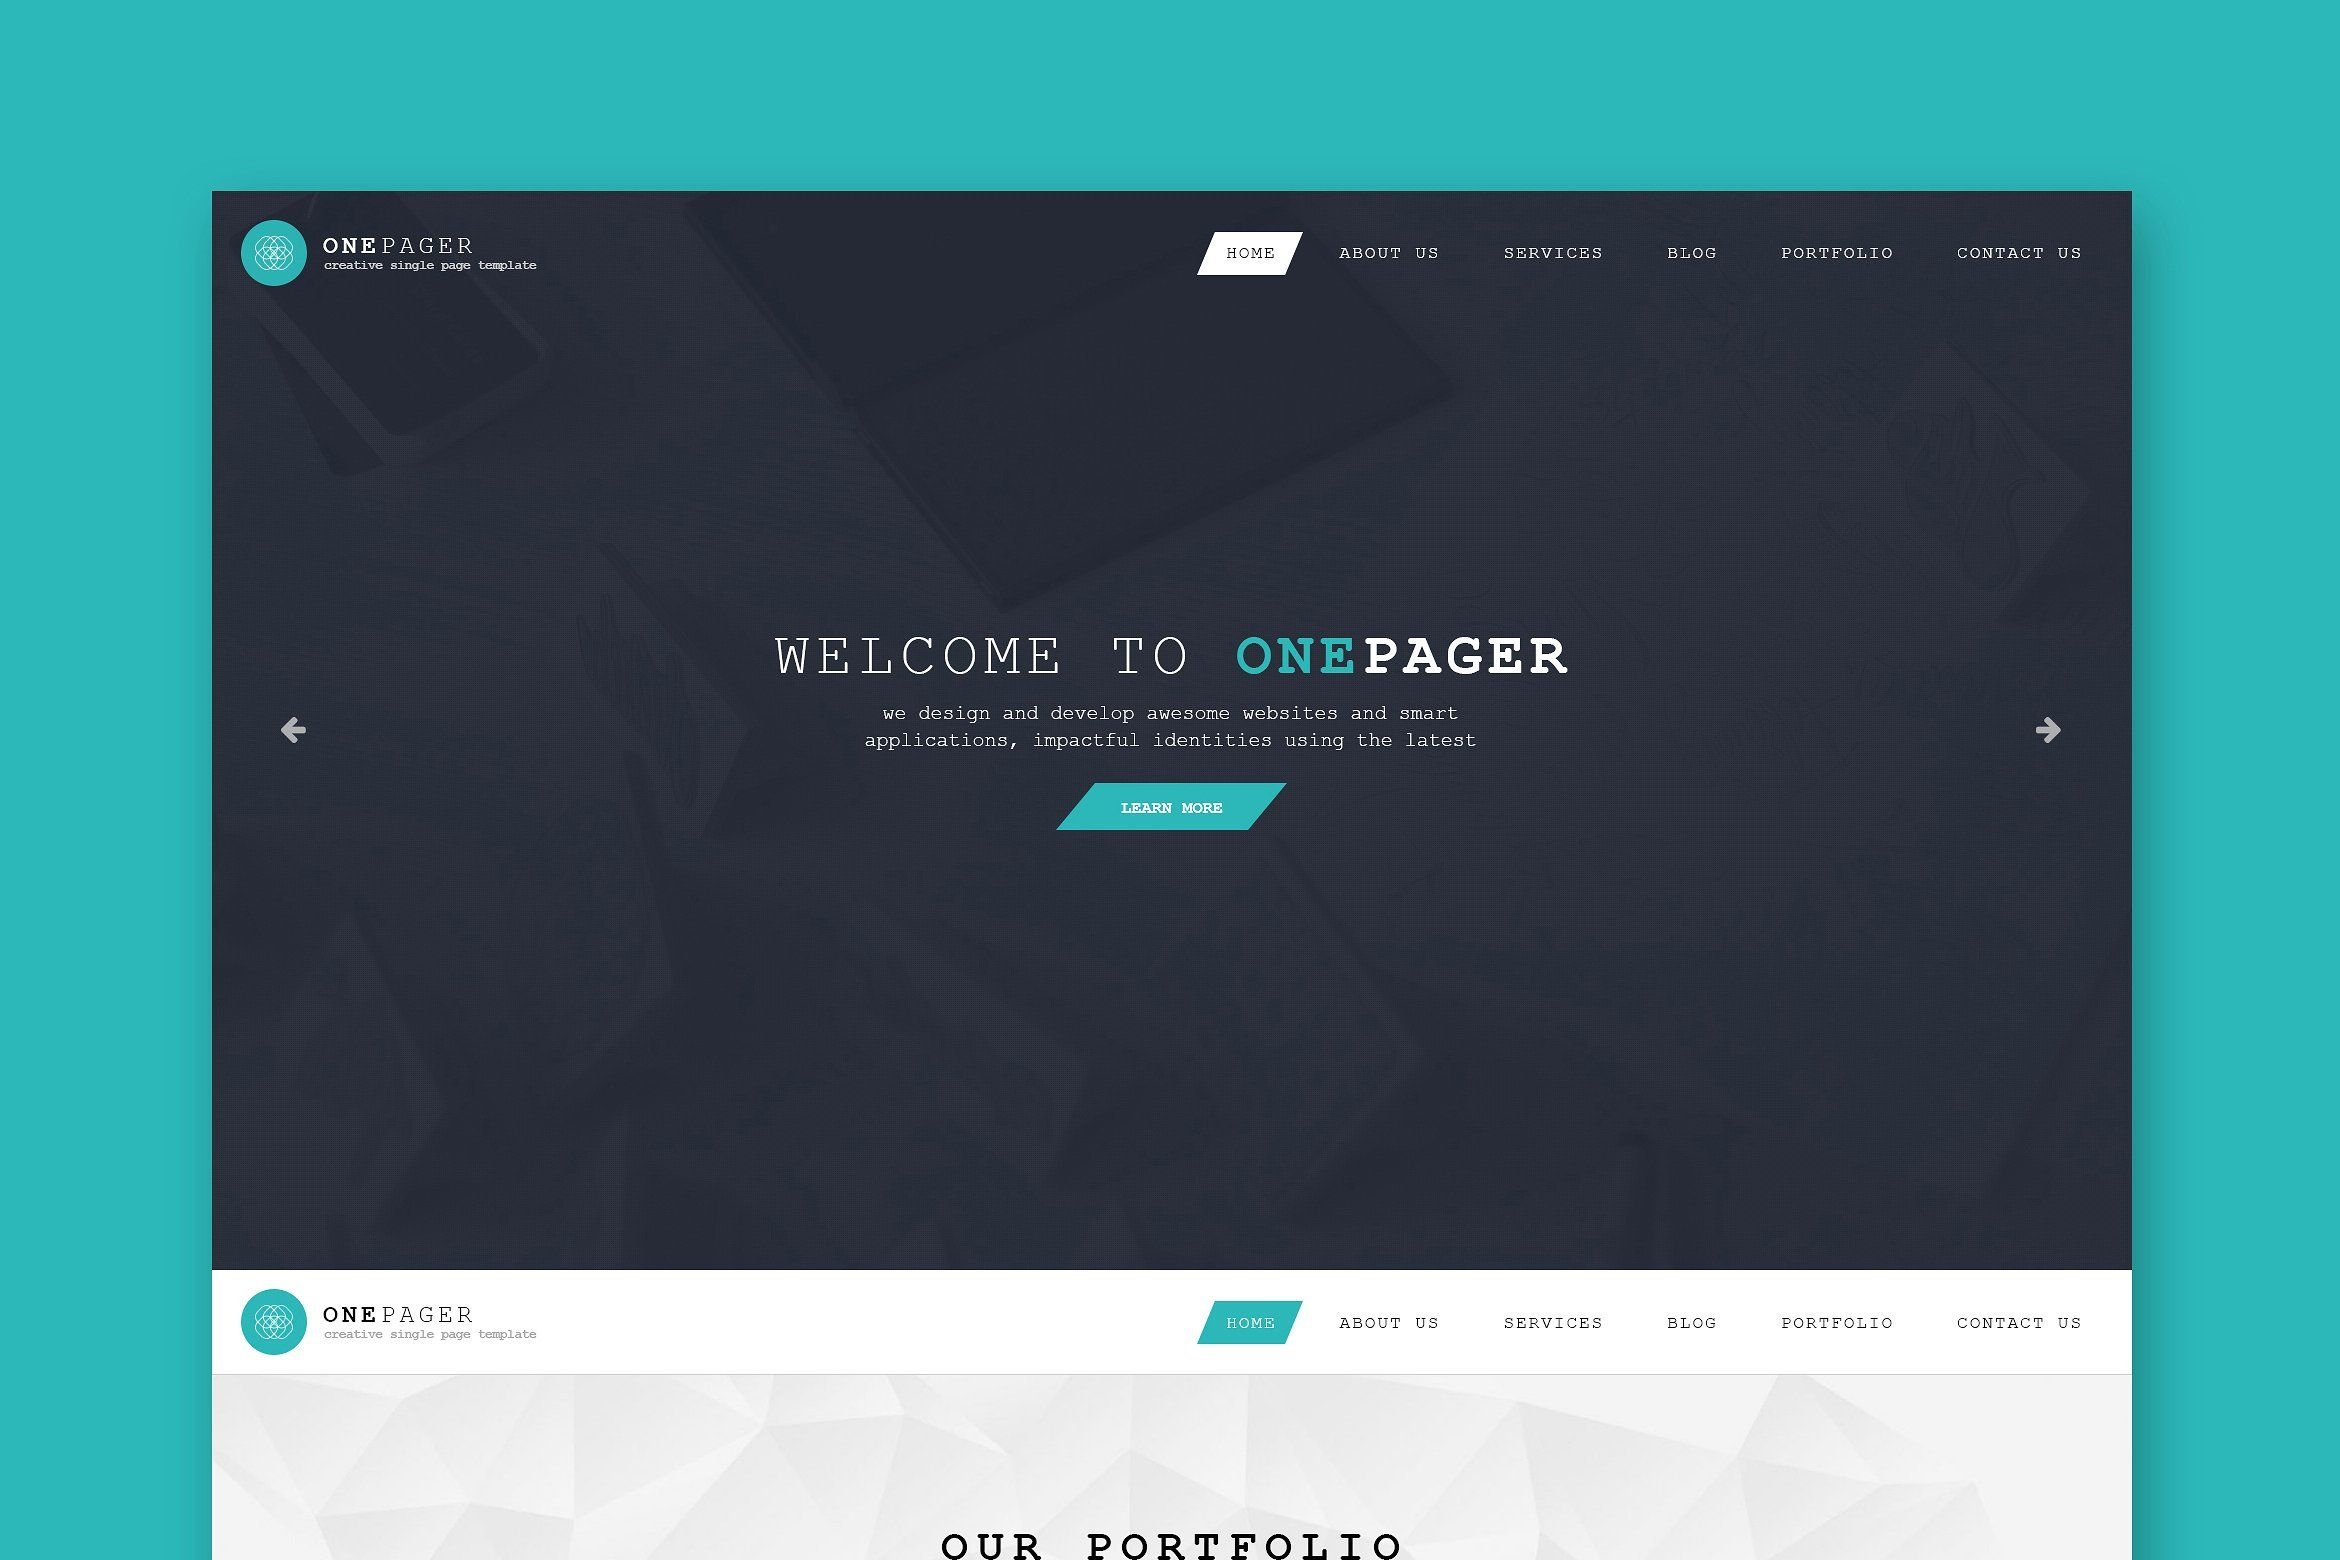 Free Html Css Templates Of The Week Web Design Freebies Website Design Templates Free Website Template Design